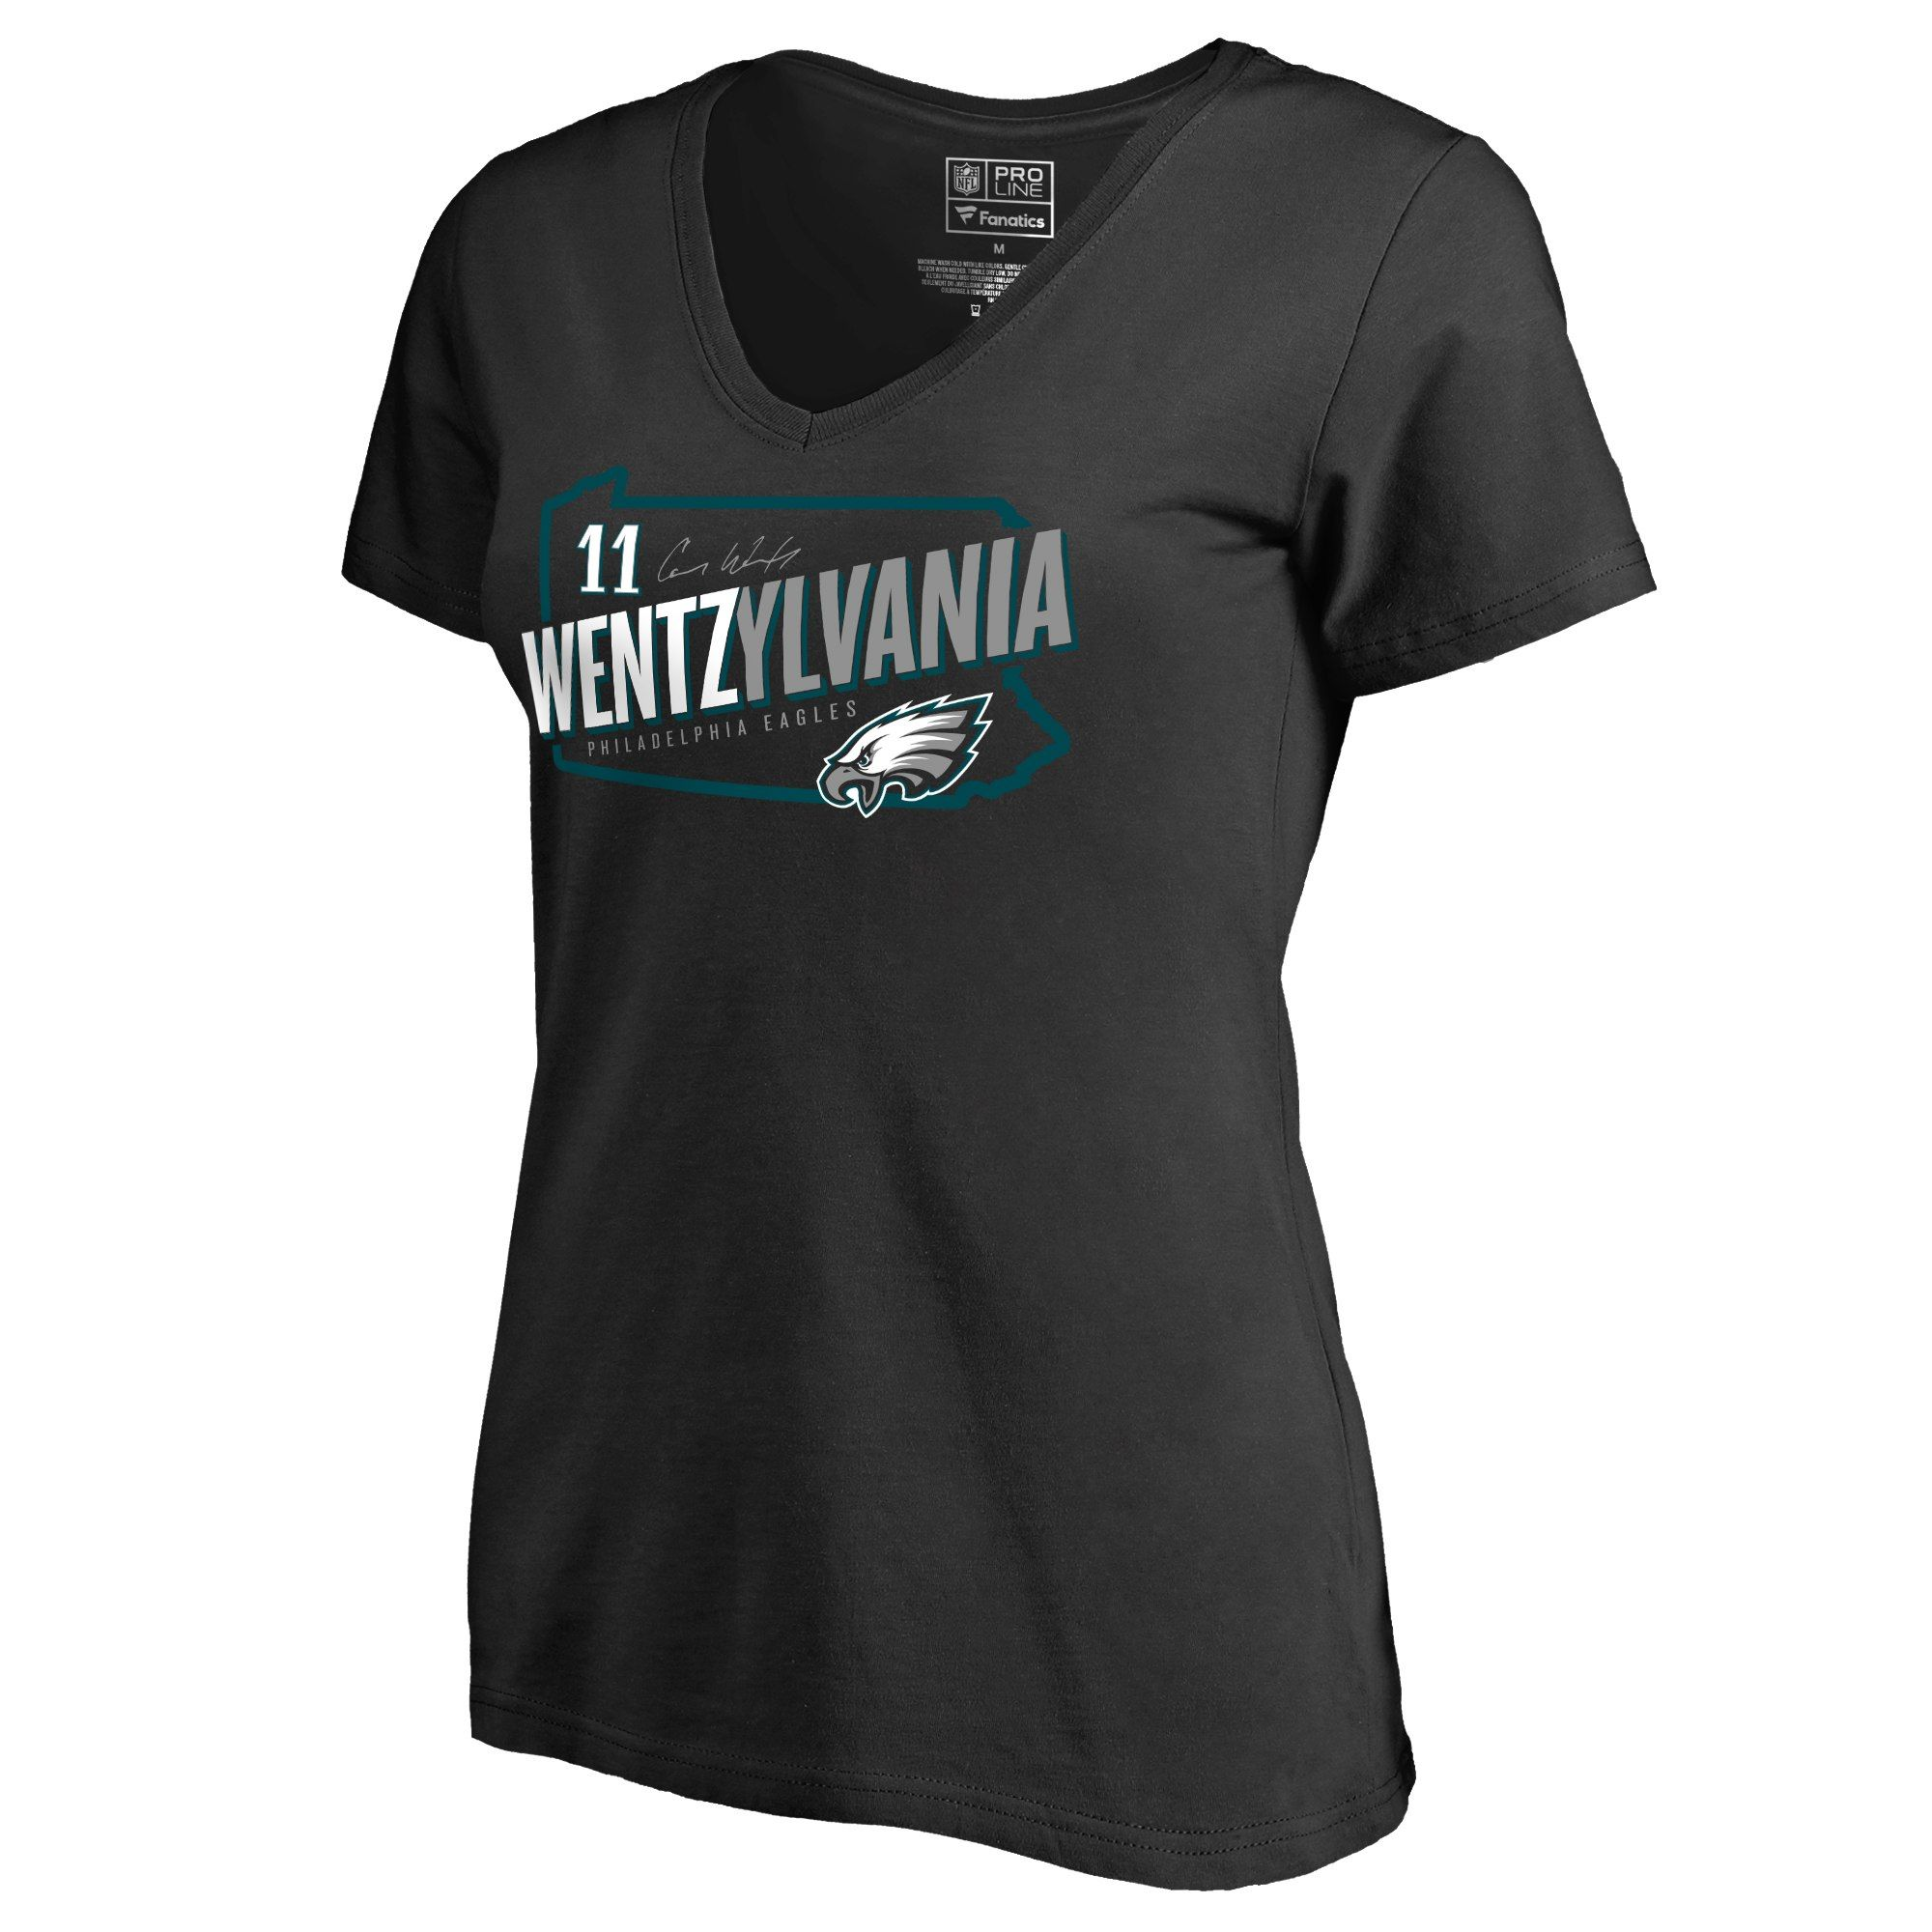 uk availability 7b2d7 ab555 Women's Philadelphia Eagles Carson Wentz NFL Pro Line Black ...